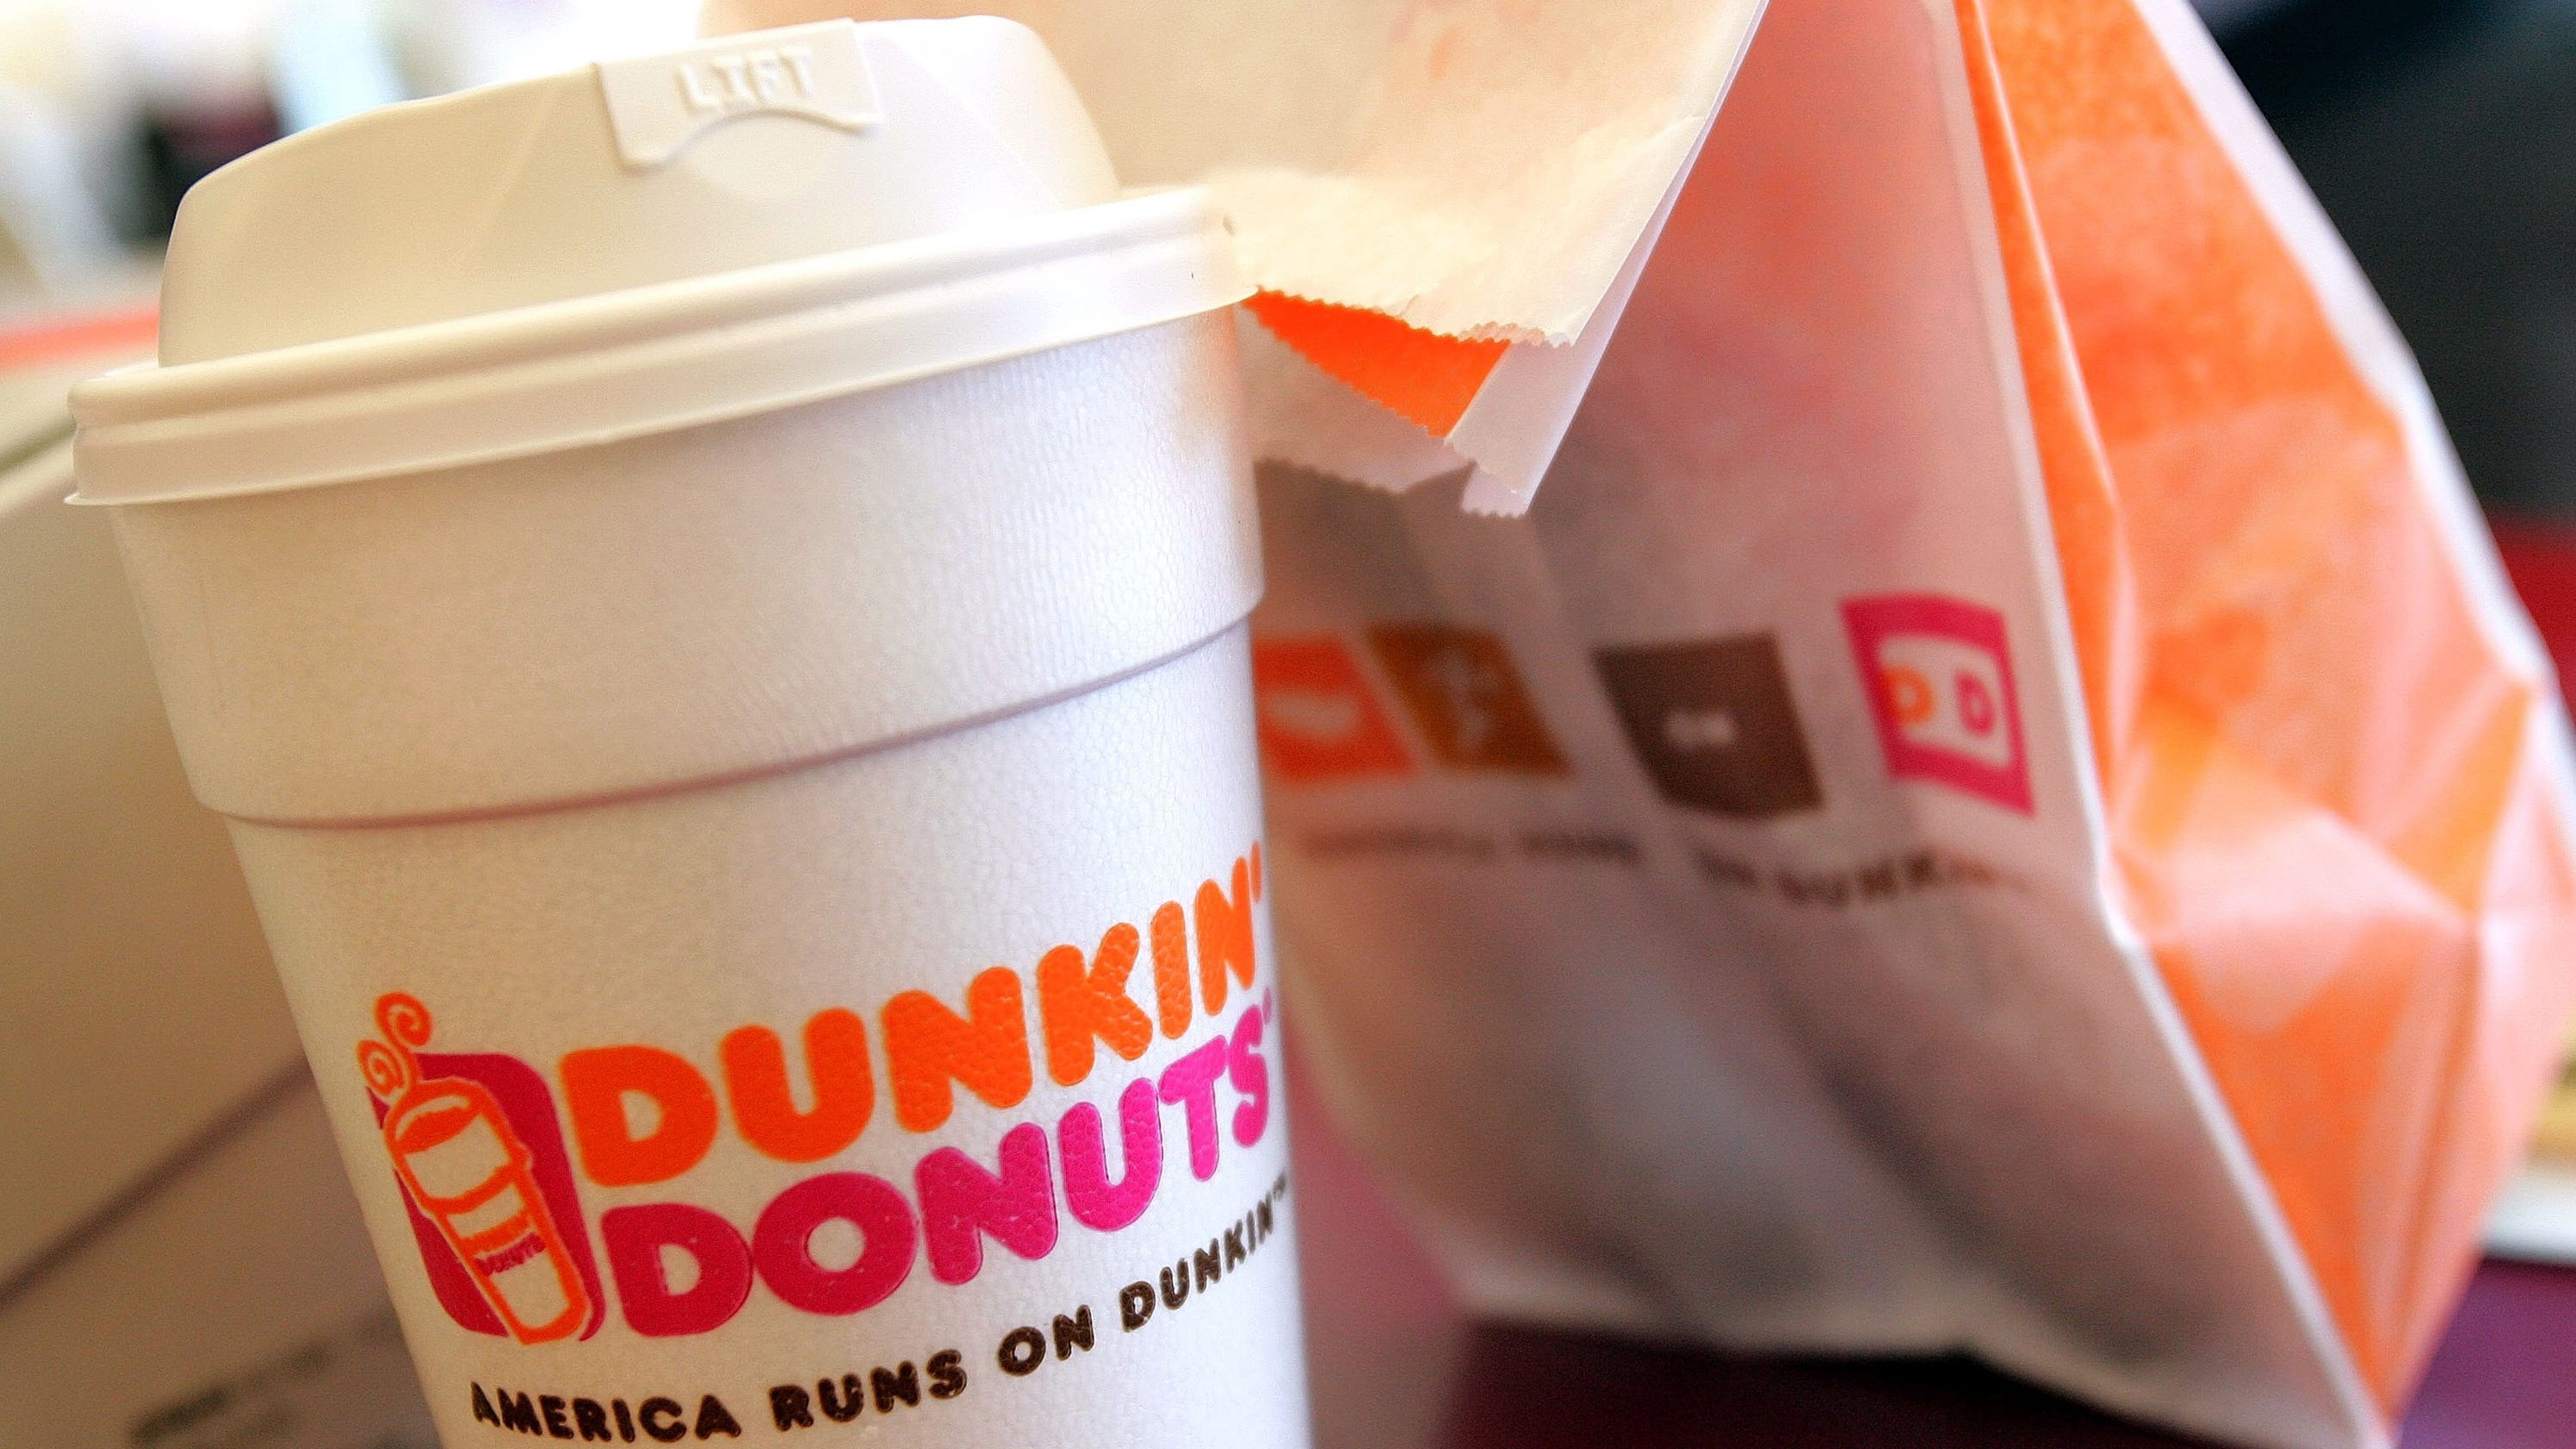 National Coffee Day deals: Where to find freebies and more